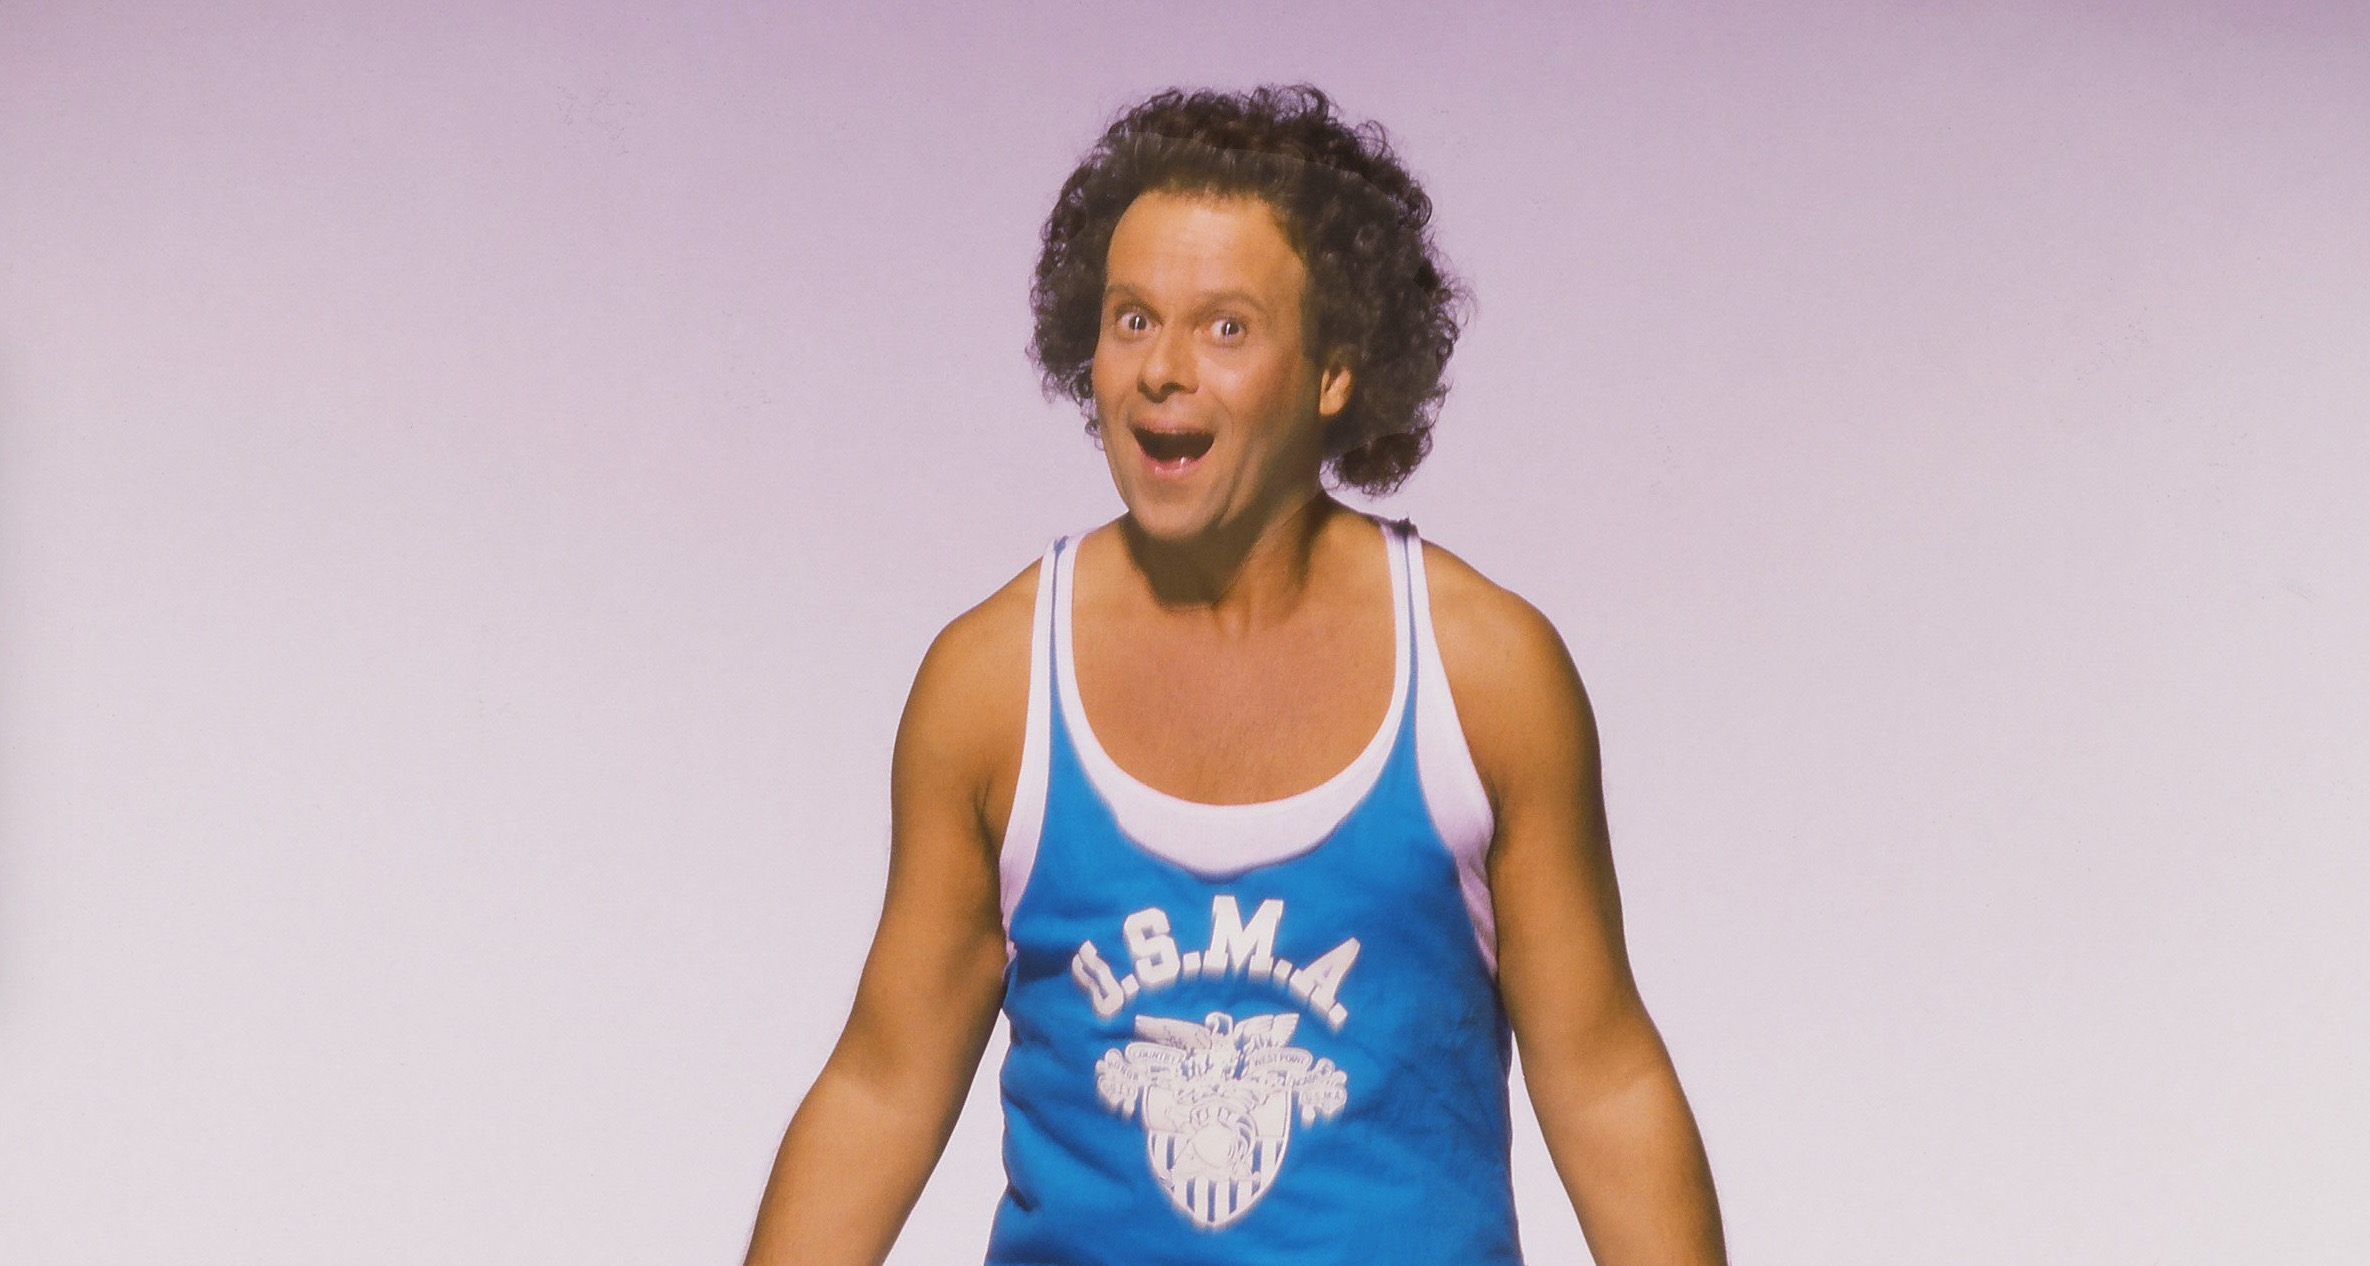 Richard Simmons Is Back (Kind Of) To Help People Stay Motivated While Quarantined